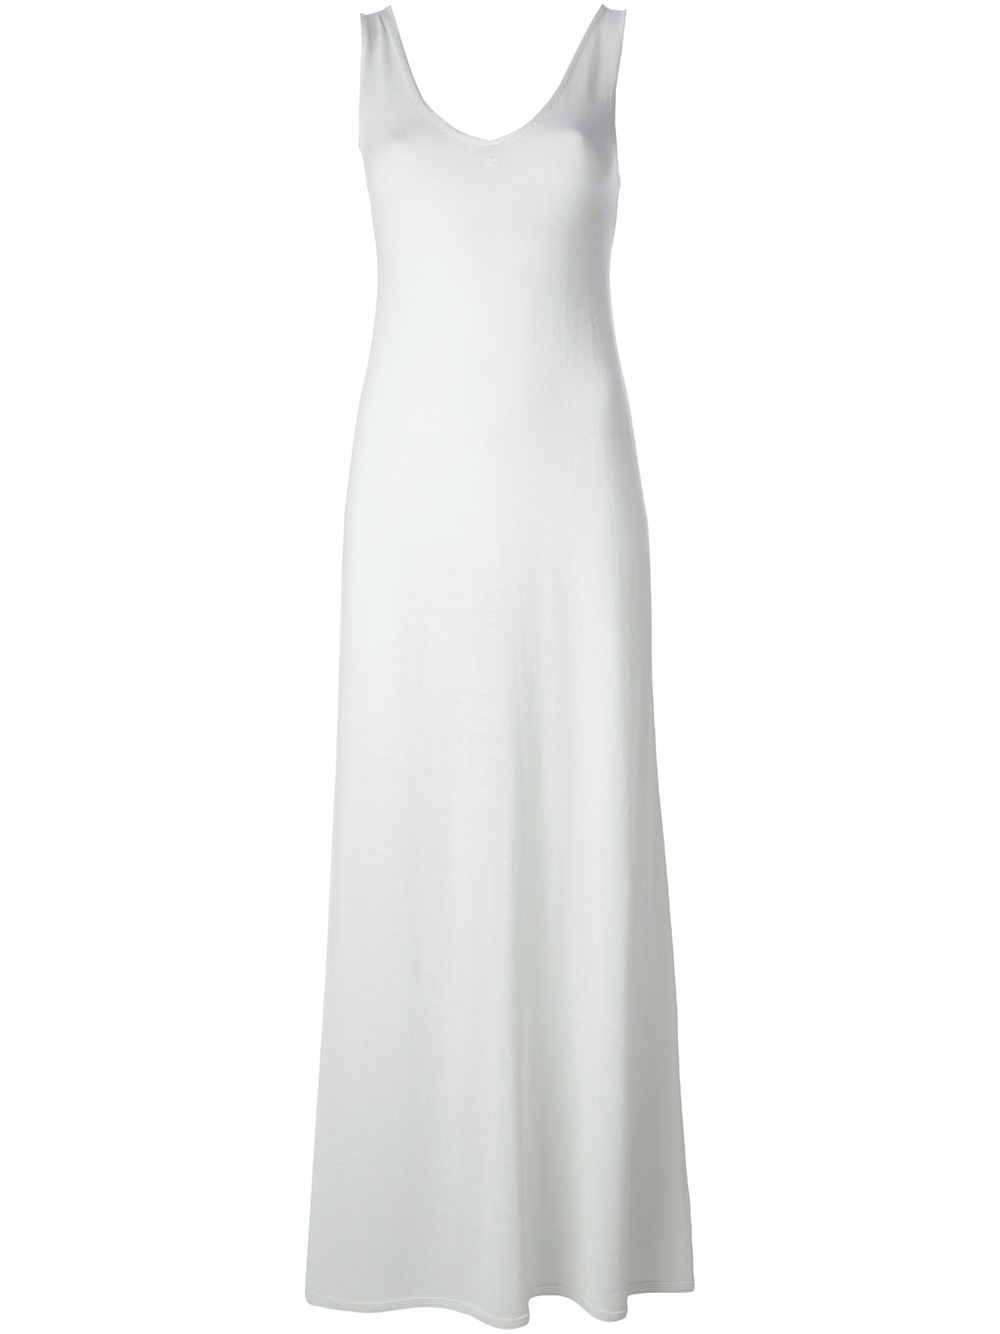 Courreges Long Sleeveless Sweater Dress In White Lyst